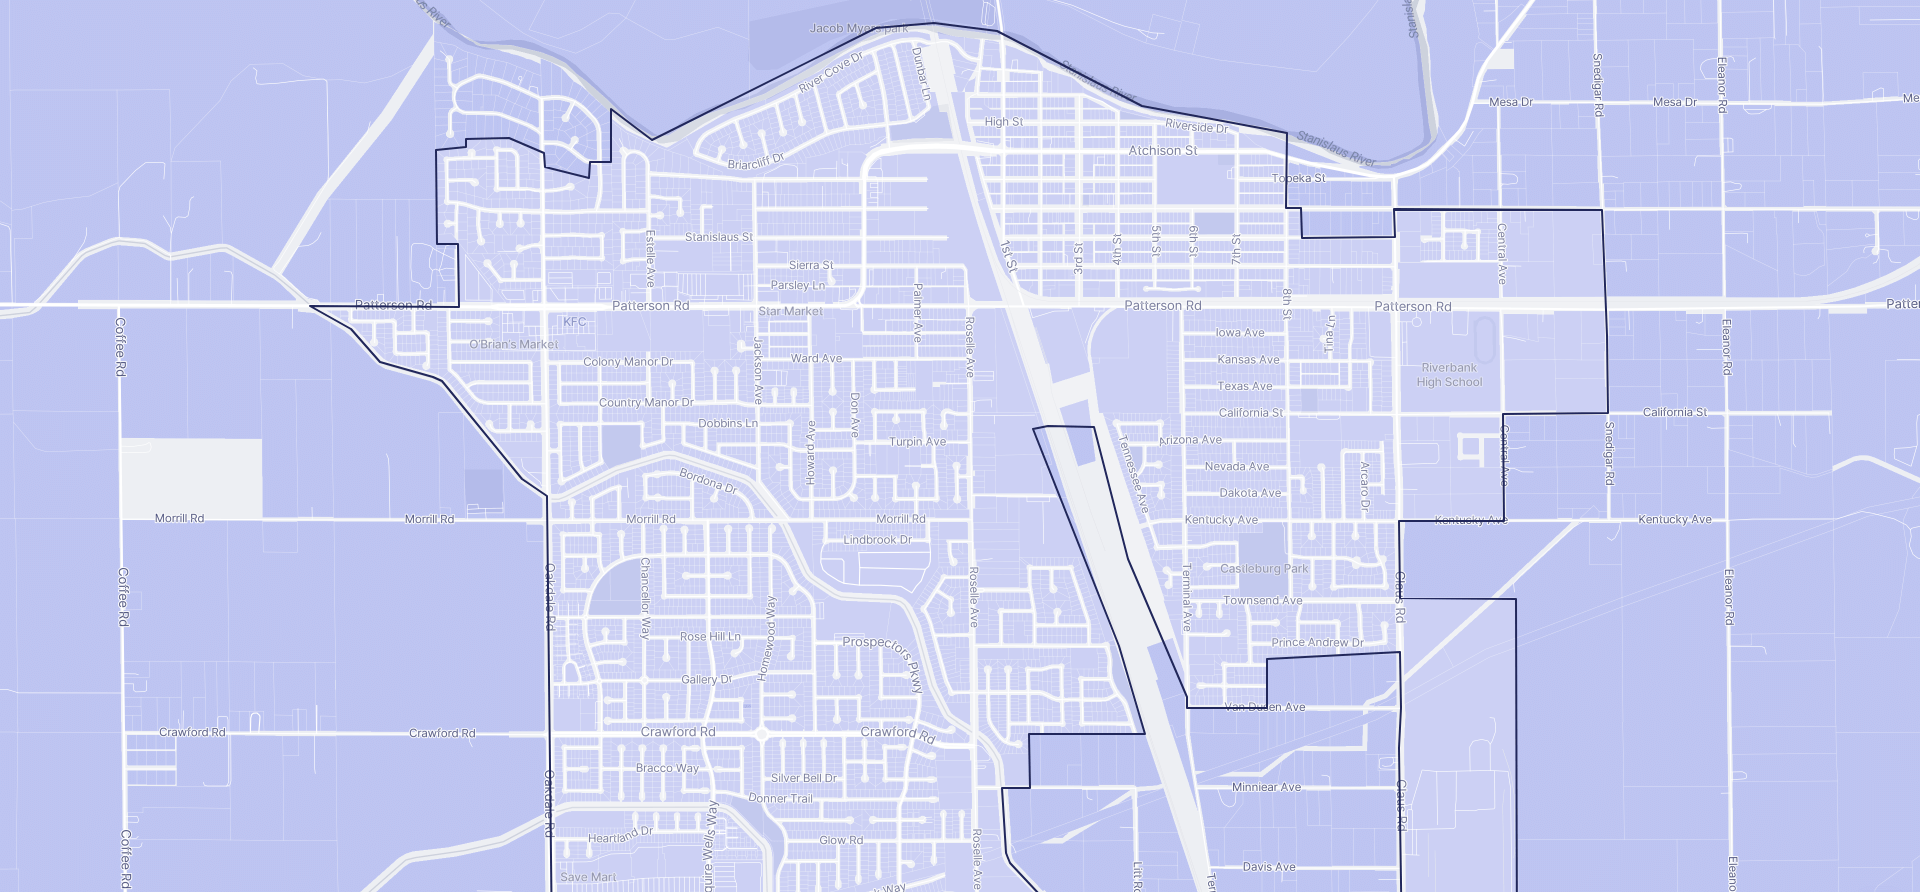 Image of Riverbank boundaries on a map.